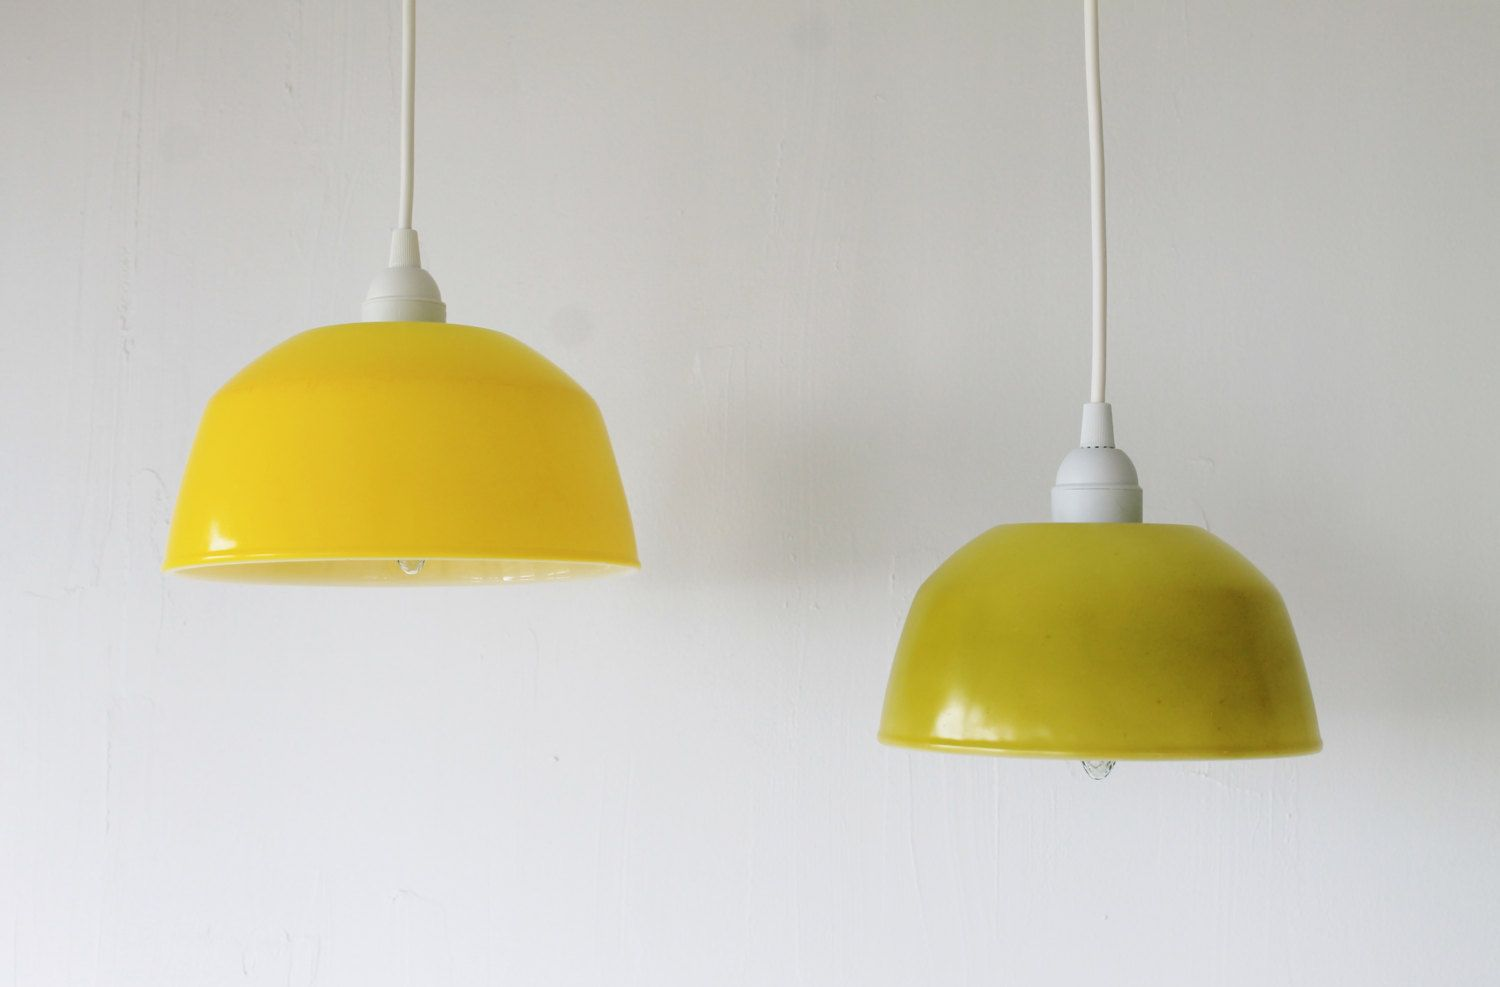 Lemon lime upcycled hanging pendant lighting fixtures for Hanging fire bowl